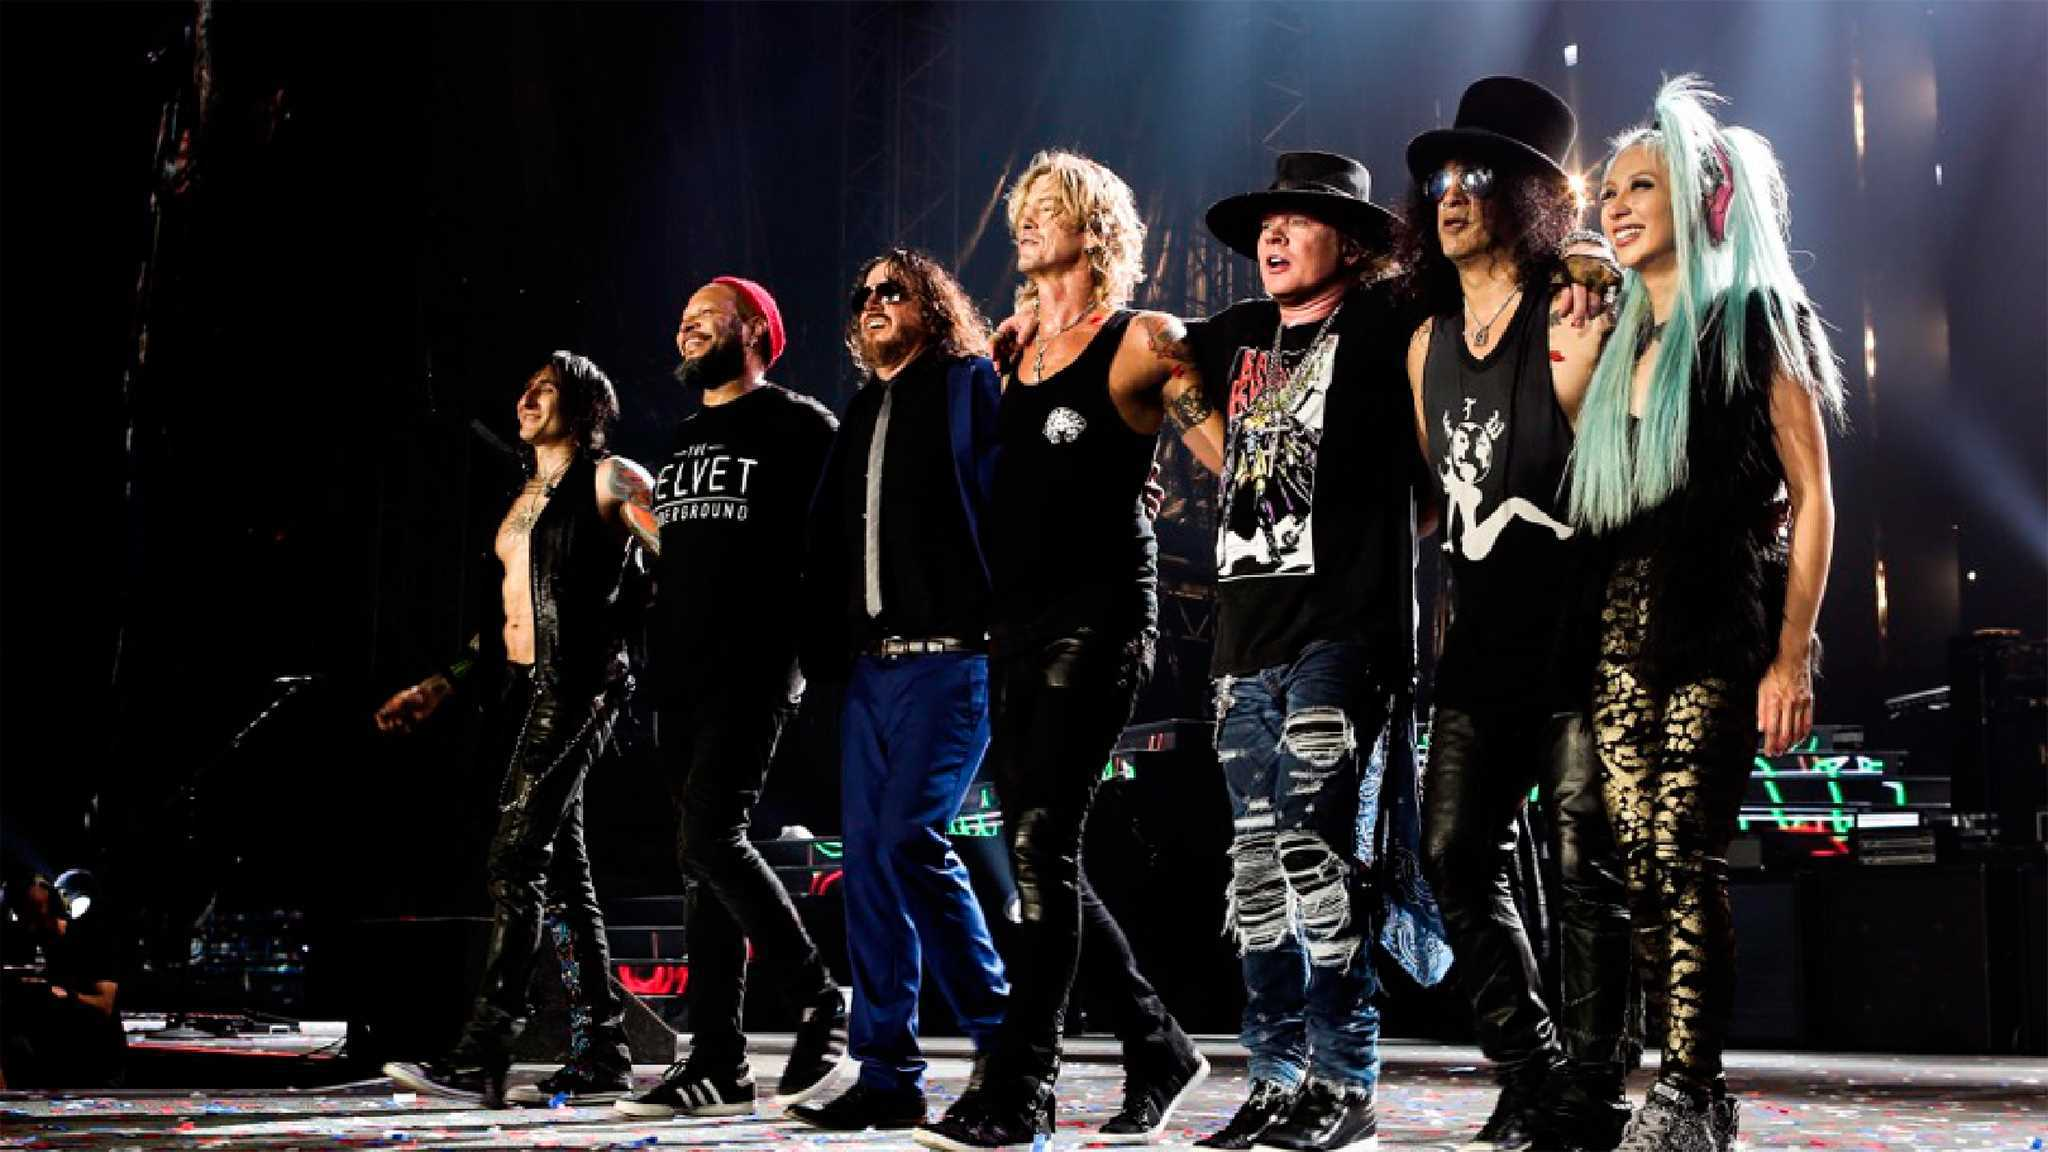 Regresa Guns N' Roses a Monterrey